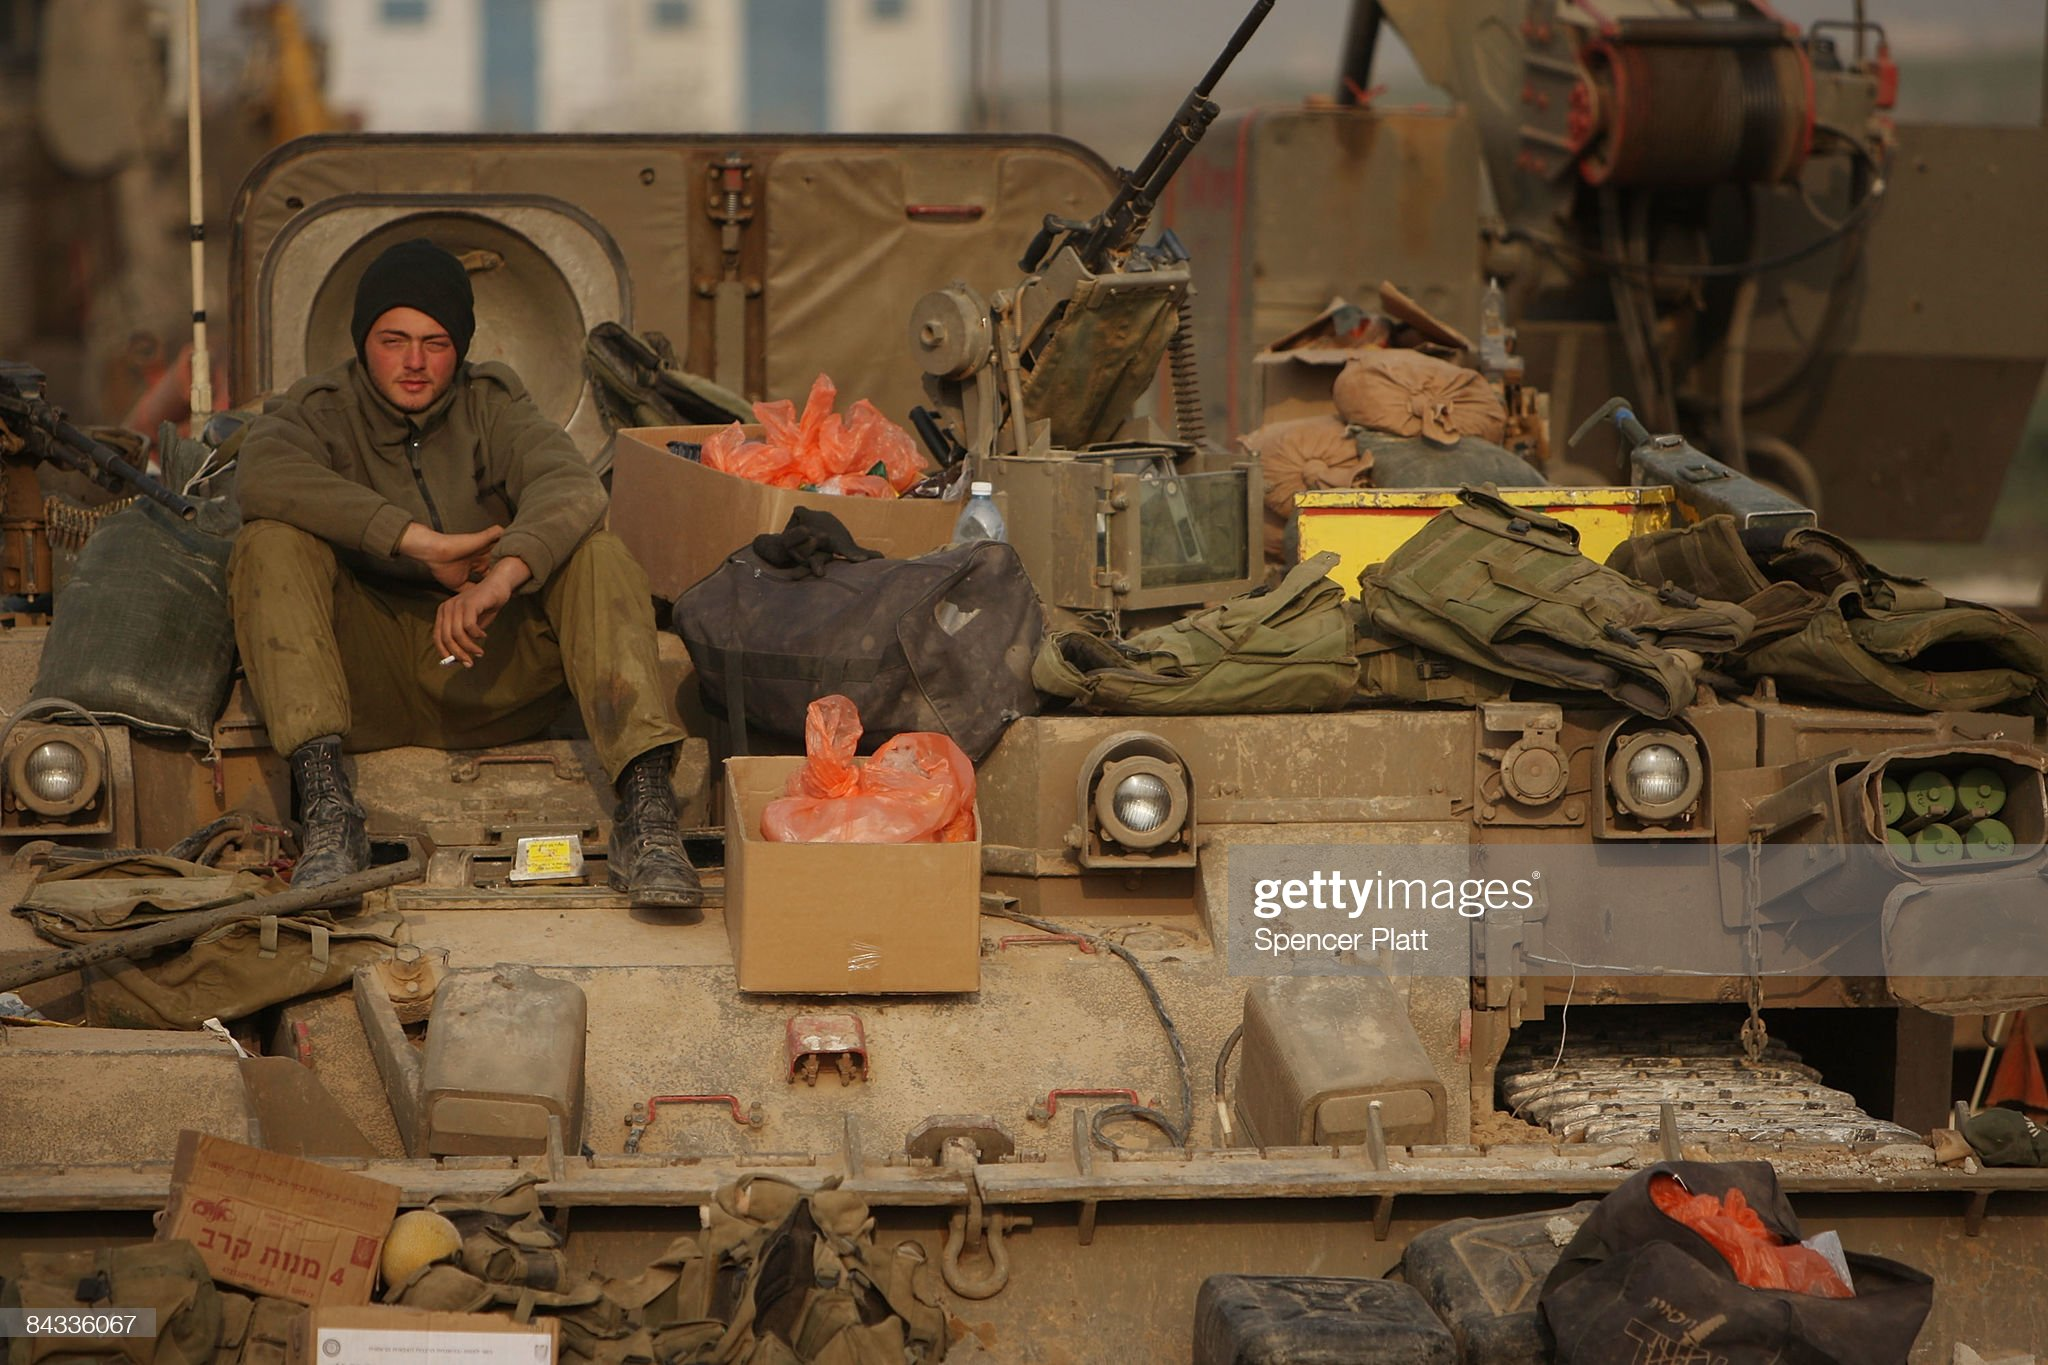 https://media.gettyimages.com/photos/an-israeli-soldier-just-back-from-gaza-sits-on-top-of-his-tank-on-17-picture-id84336067?s=2048x2048